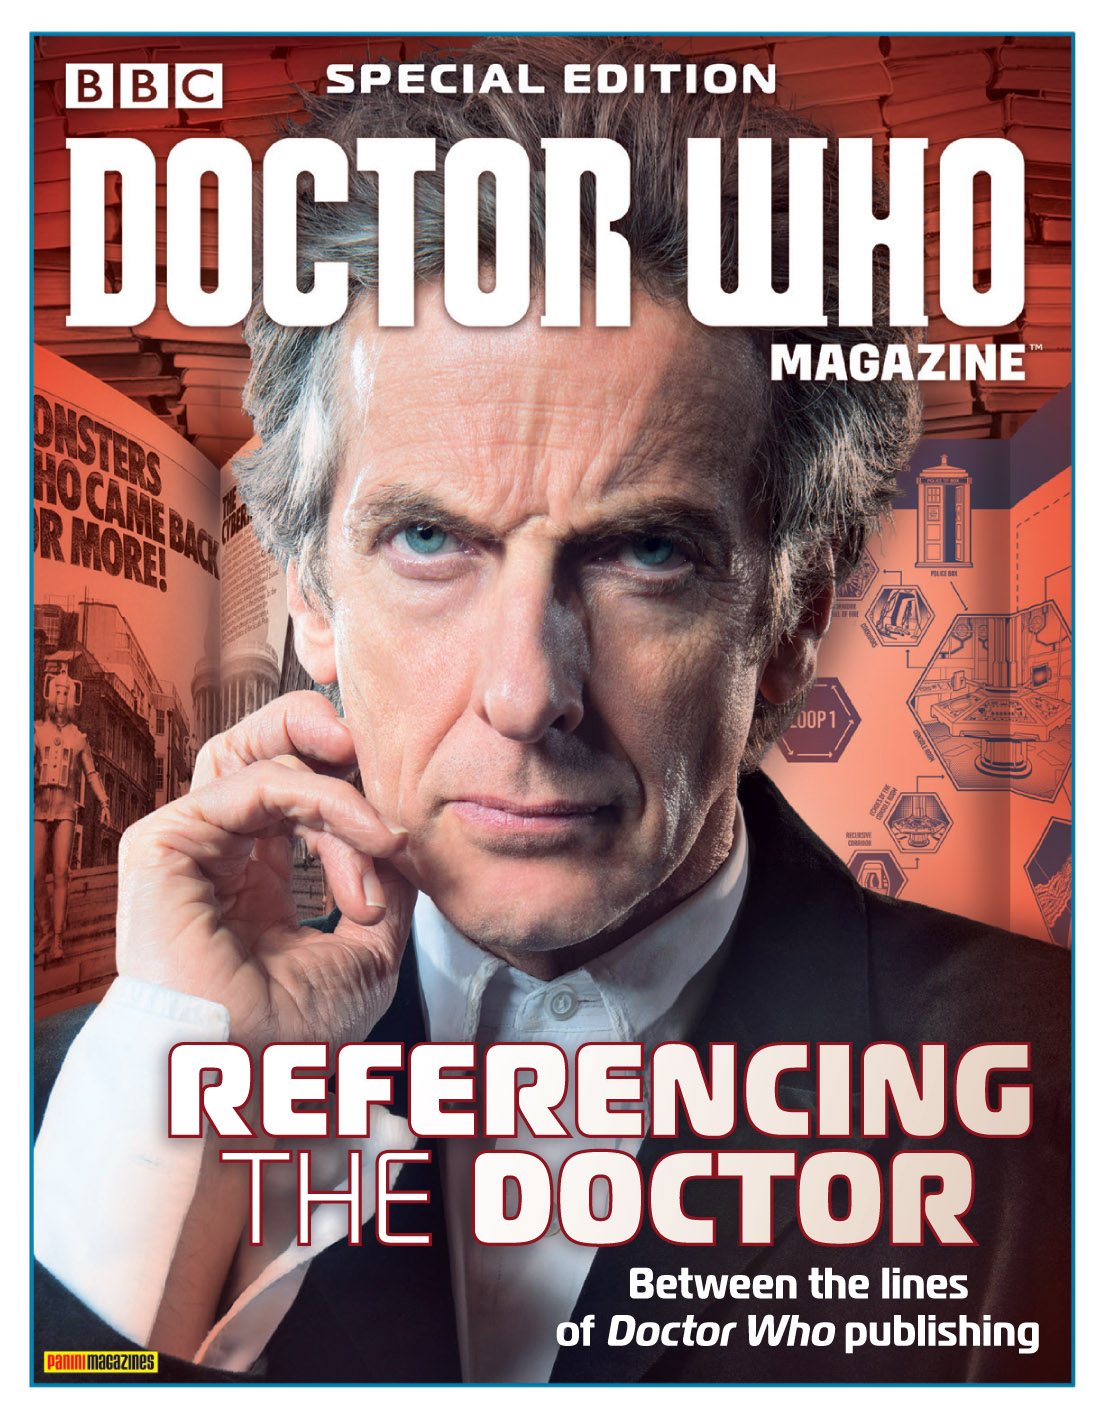 Referencing The Doctor (Credit: Panini)